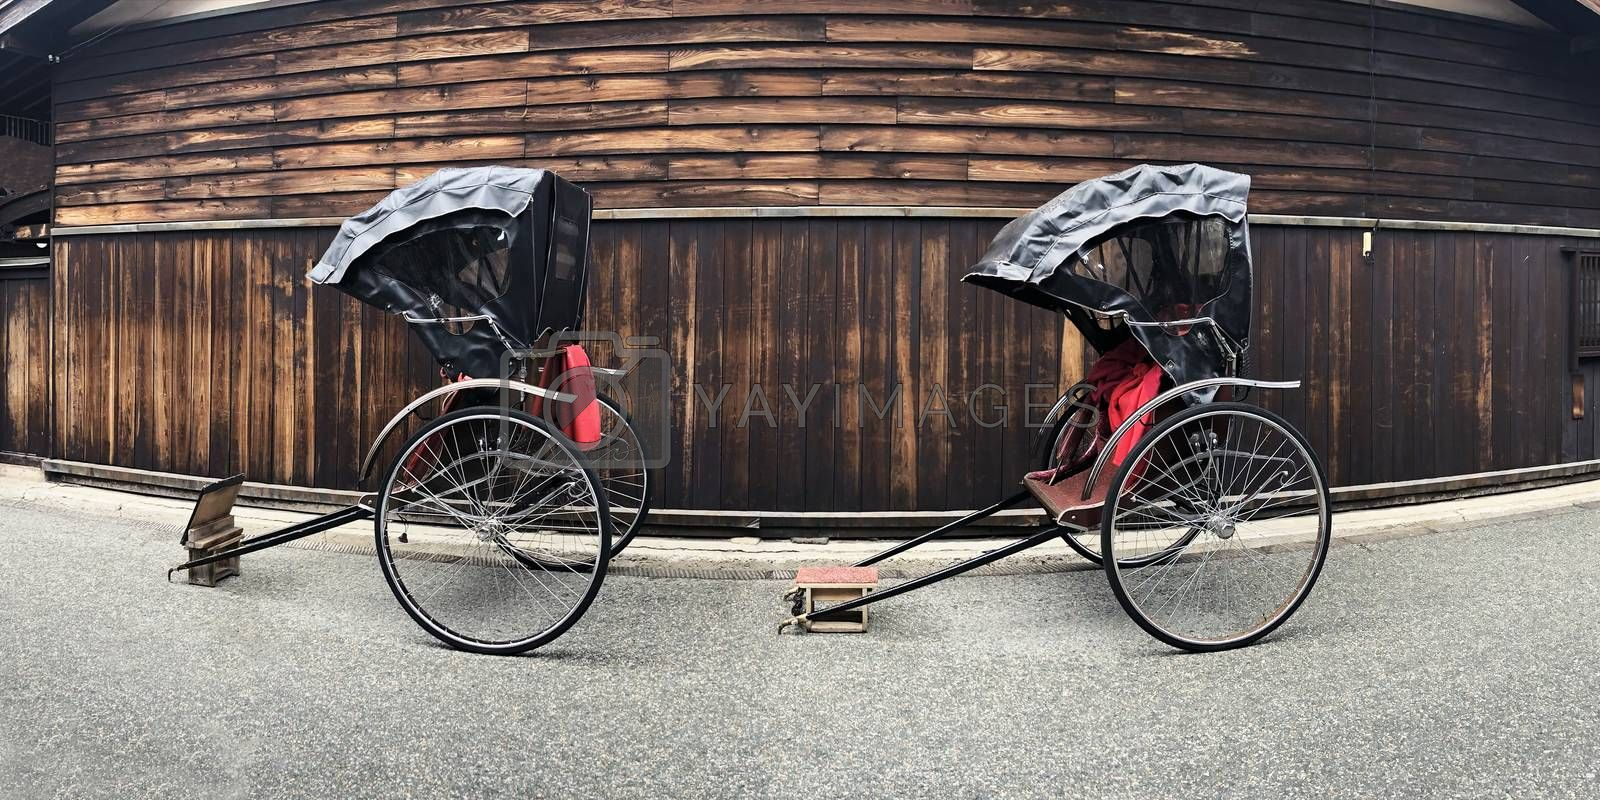 Ancient Japanese Tricycles at shopping street in takayama, Japan